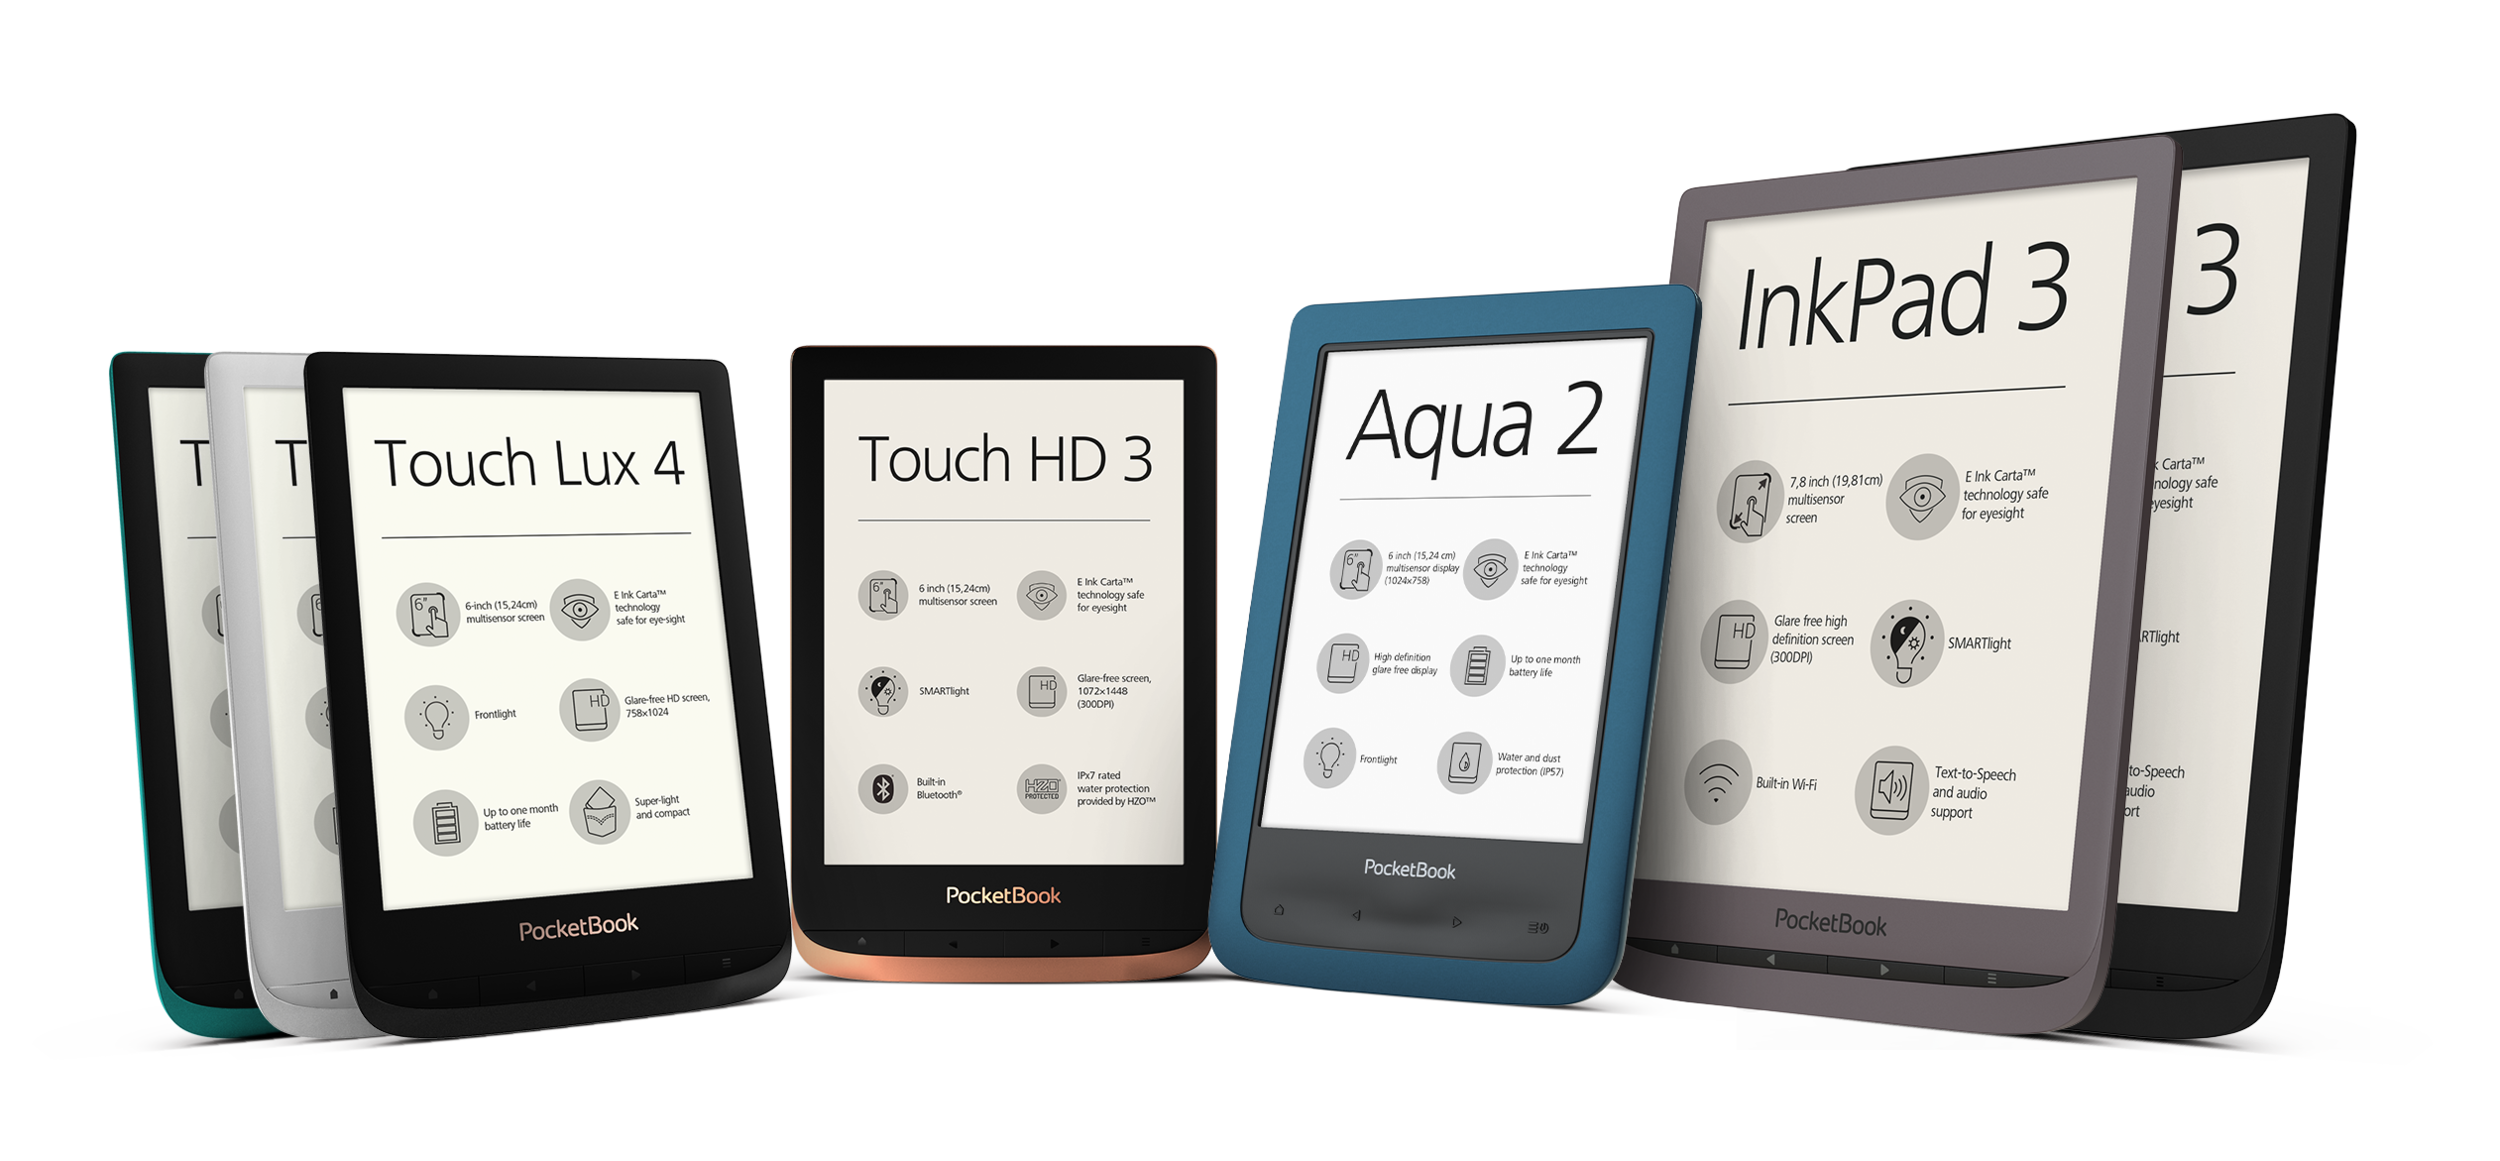 Composition_Aqua2_InkPad3_TouchLux4_TouchHD3_ICO.png